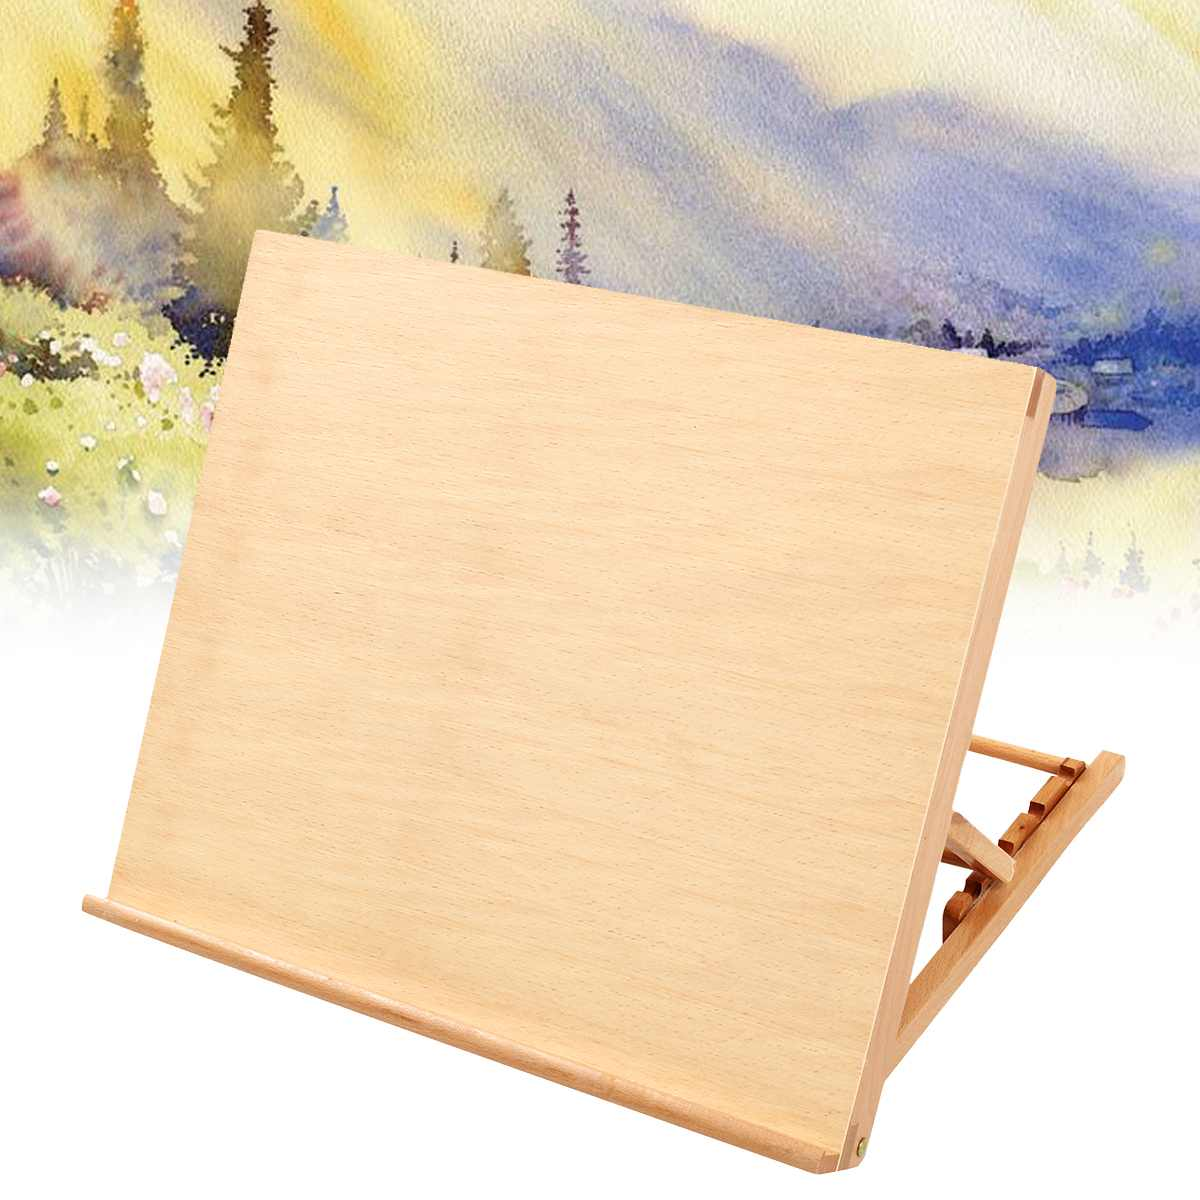 49x42x6cm Wooden Durable Easels Display Stand Artist School Painting Rack Wedding Table Card Stand Holder For Party Decoration